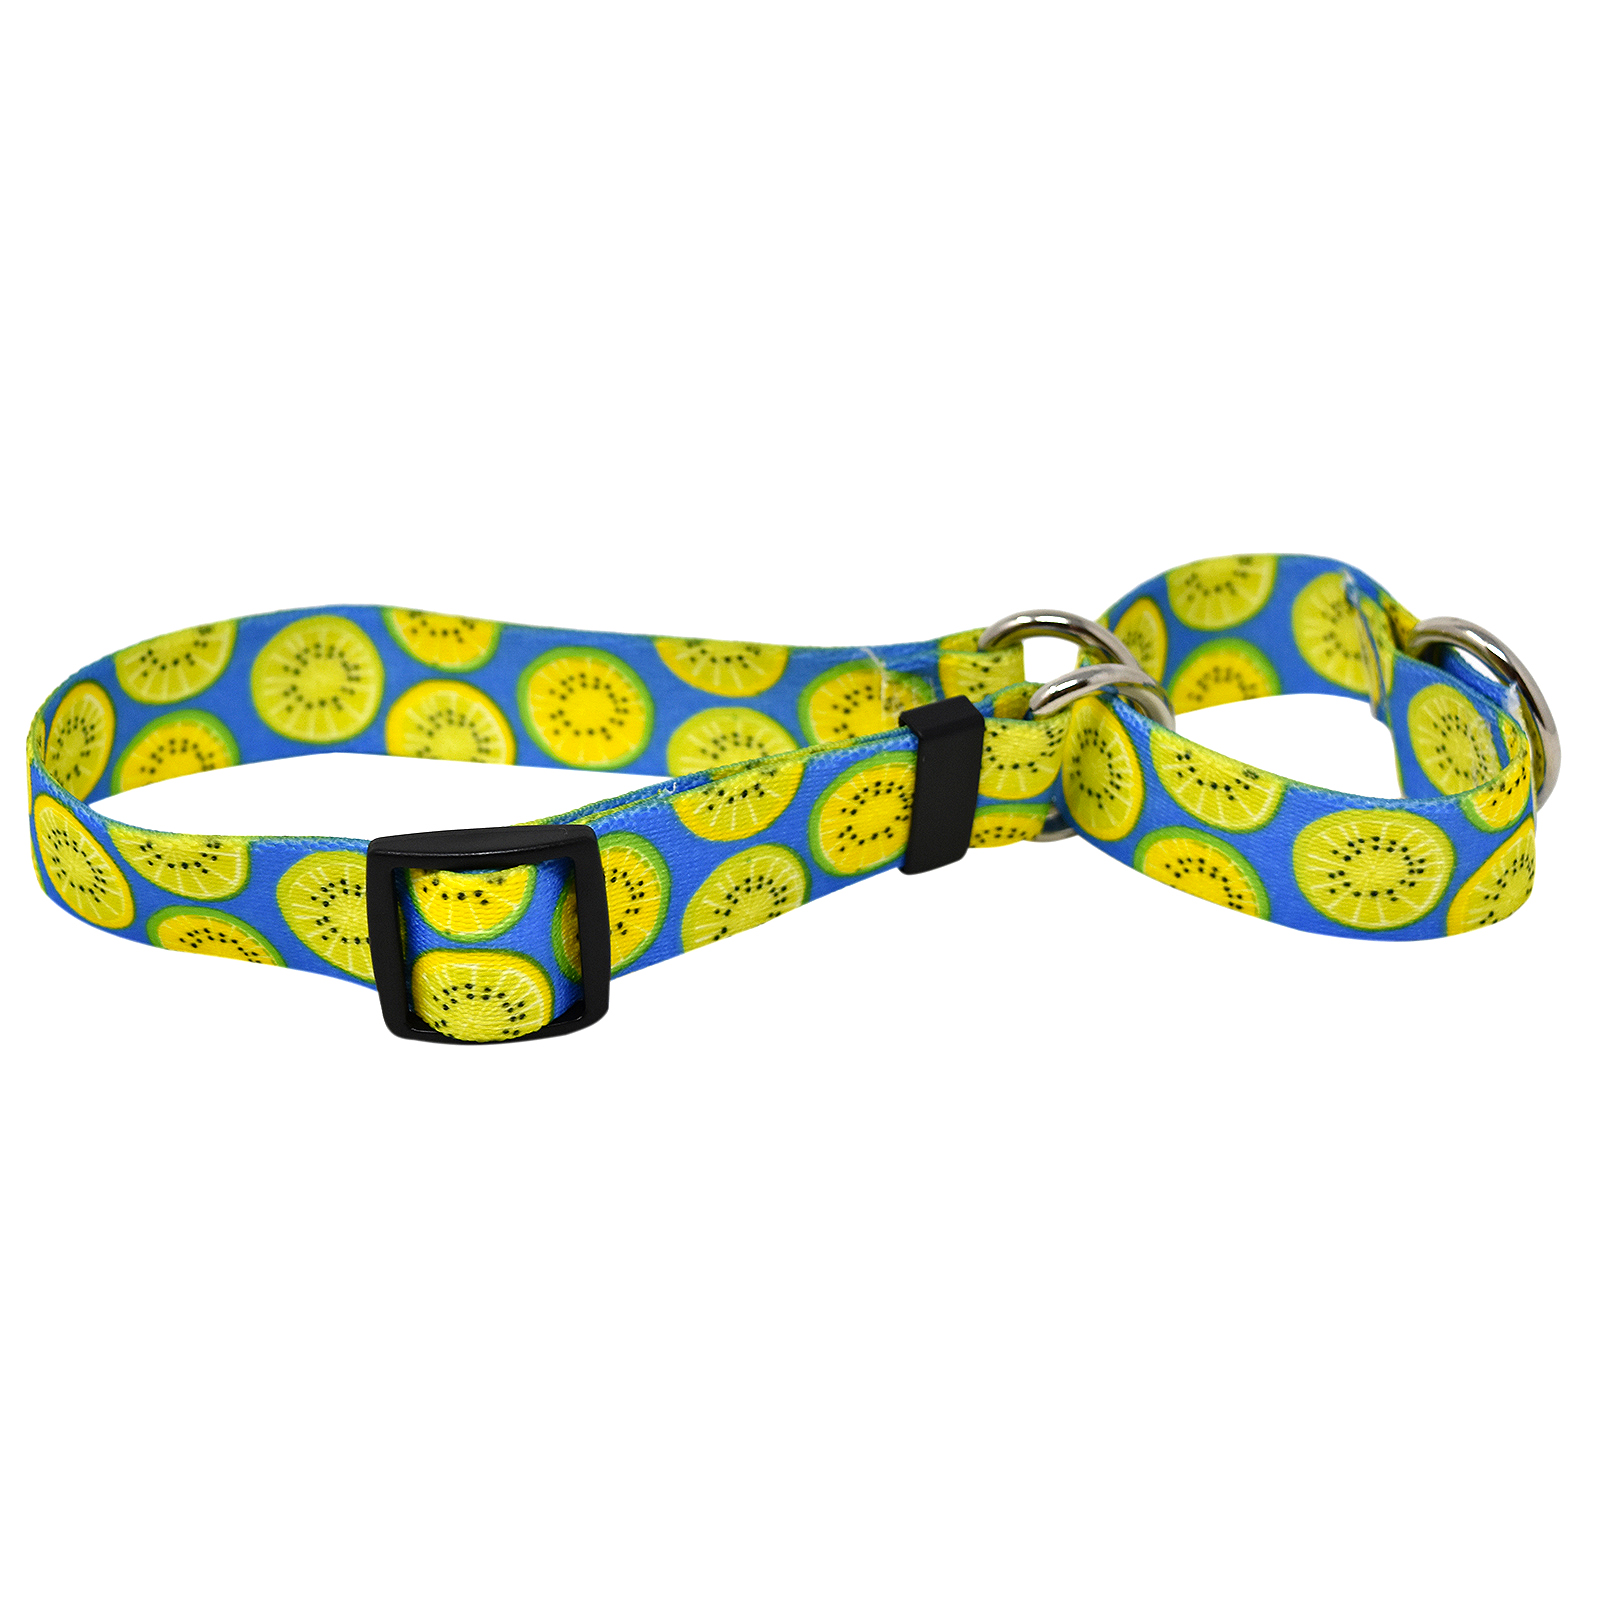 Lemon Lime Blue Martingale Collar